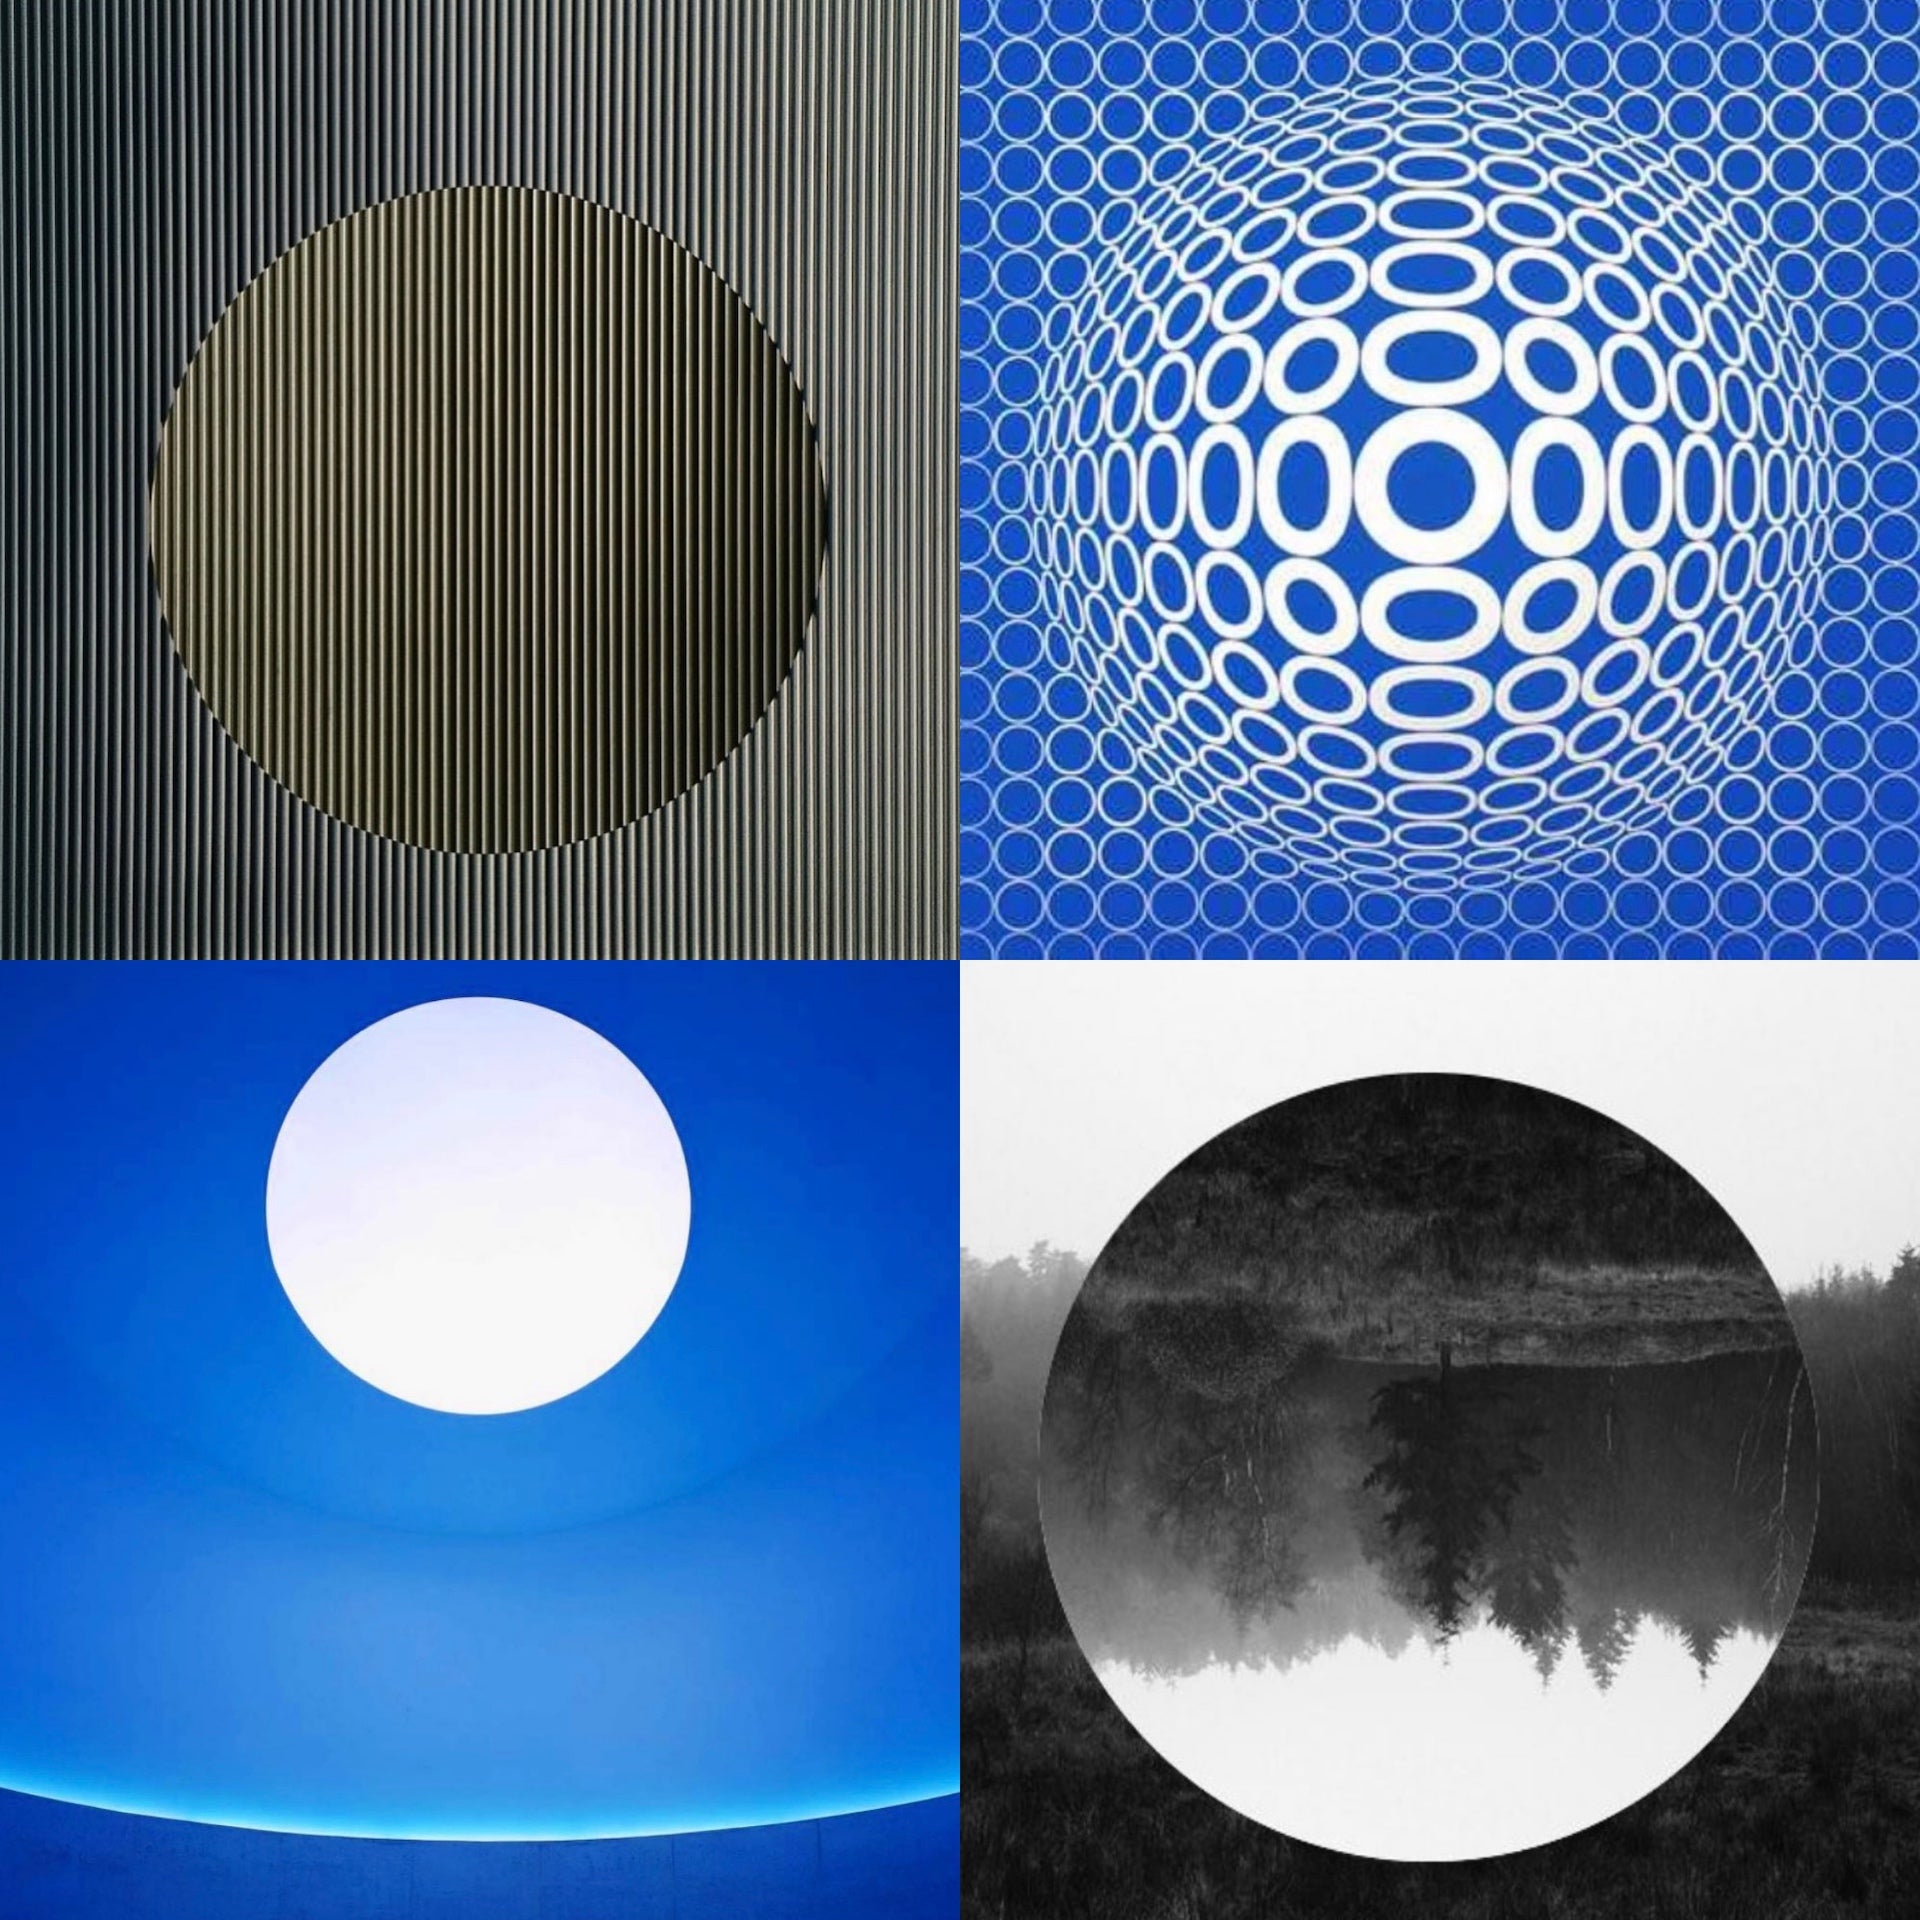 Examples of the oculus motif in Pop Art, featuring details from work by Carlos Cruz-Diez, Victor Vasarely, James Turrell, and Anish Kapoor. Collage courtesy of Lee Mindel